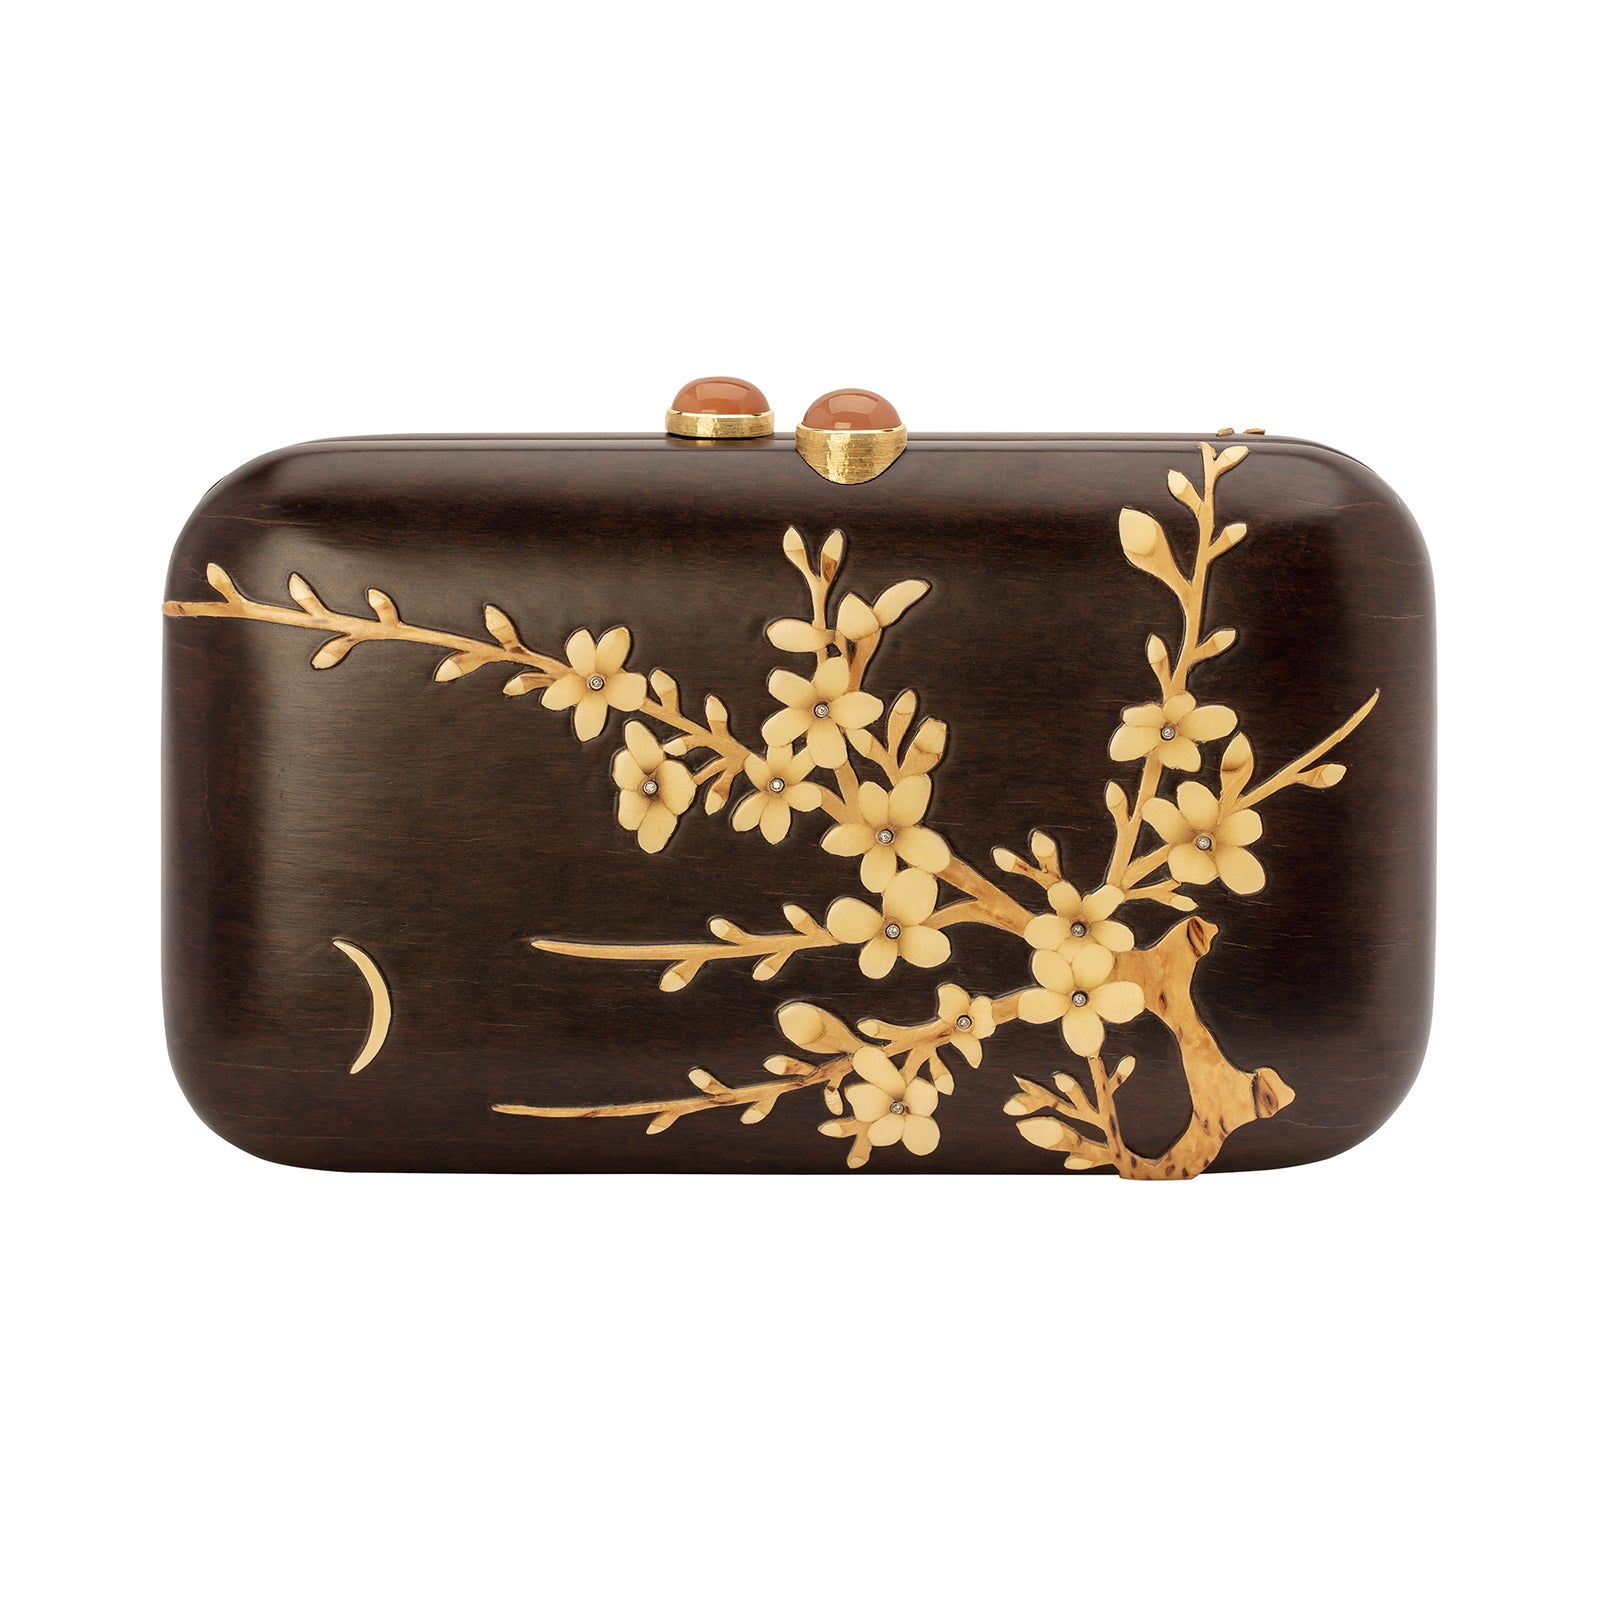 Silvia Furmanovich Marquetry Dark Brown Raised Floral Clutch - Accessories - Broken English Jewelry